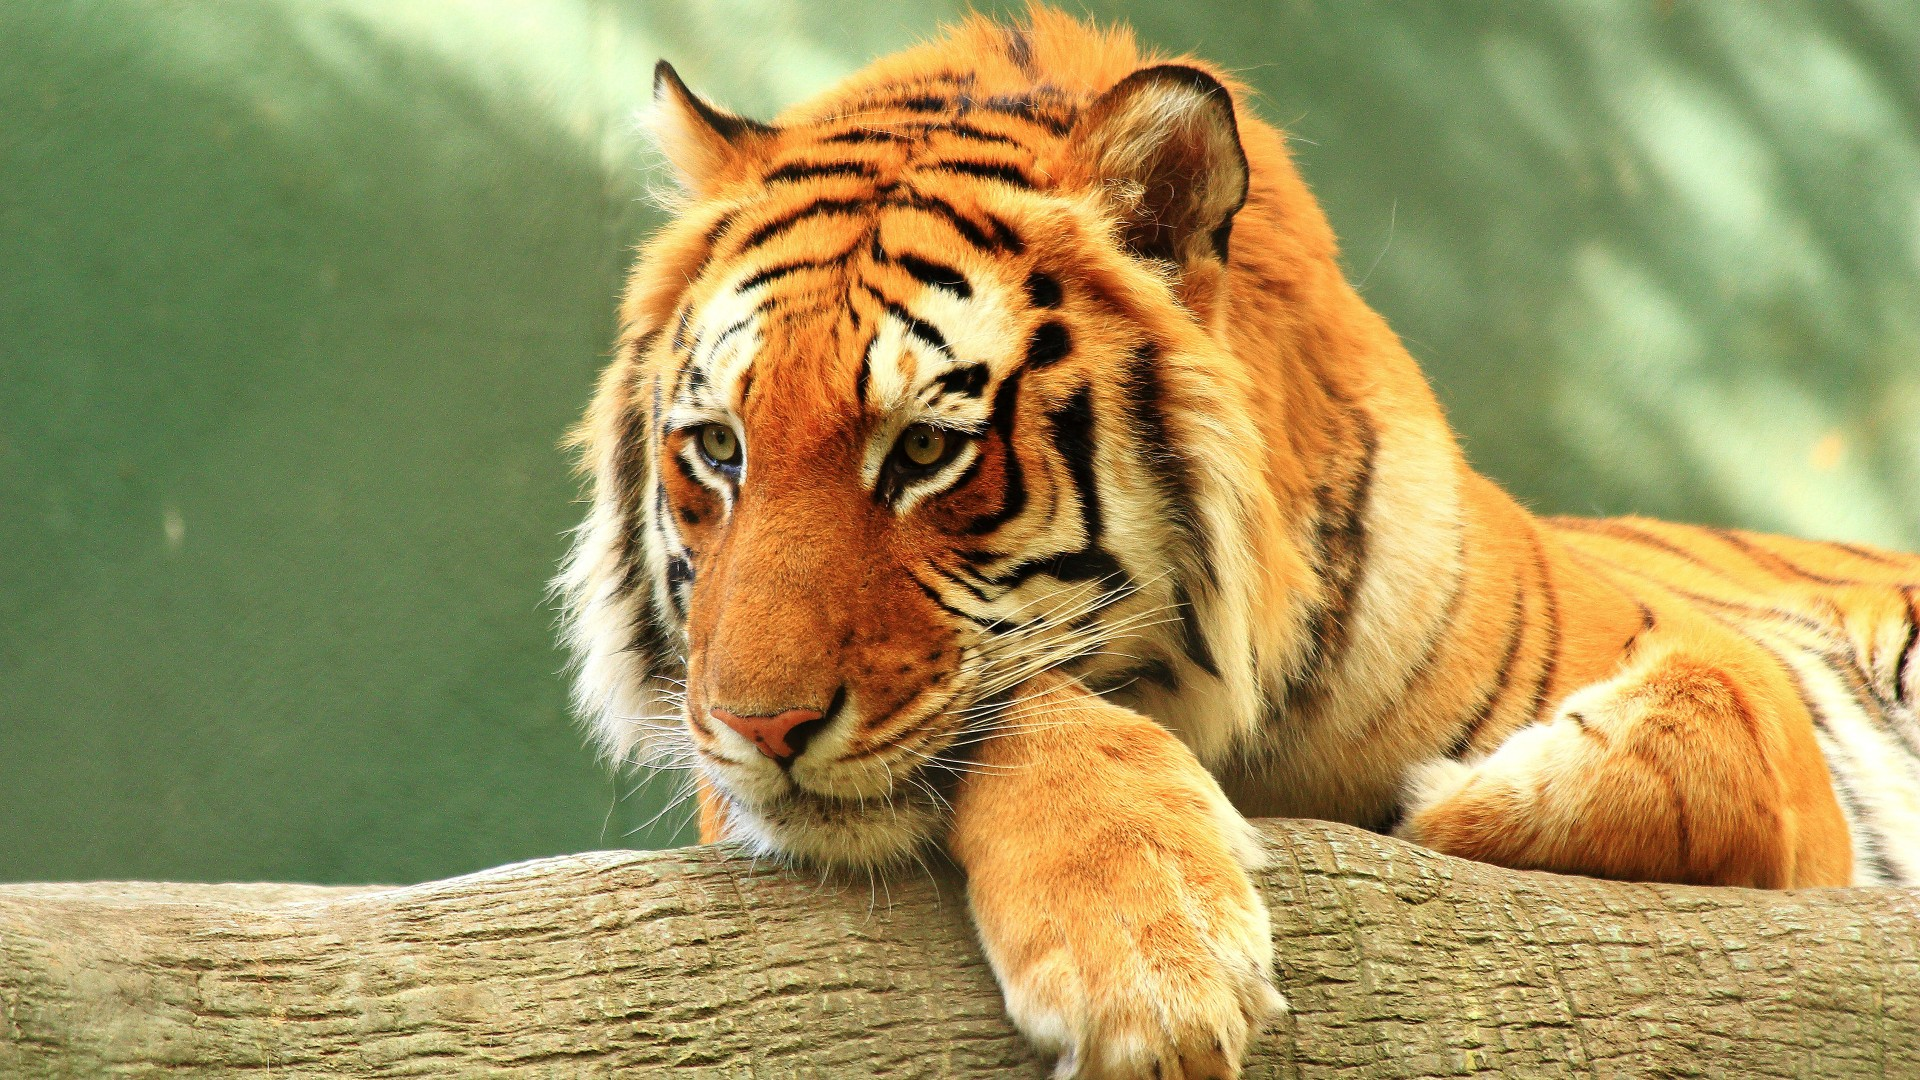 Cute Wallpaper For Iphone 5s Hd Tiger Close Up 4k Wallpapers Hd Wallpapers Id 20894